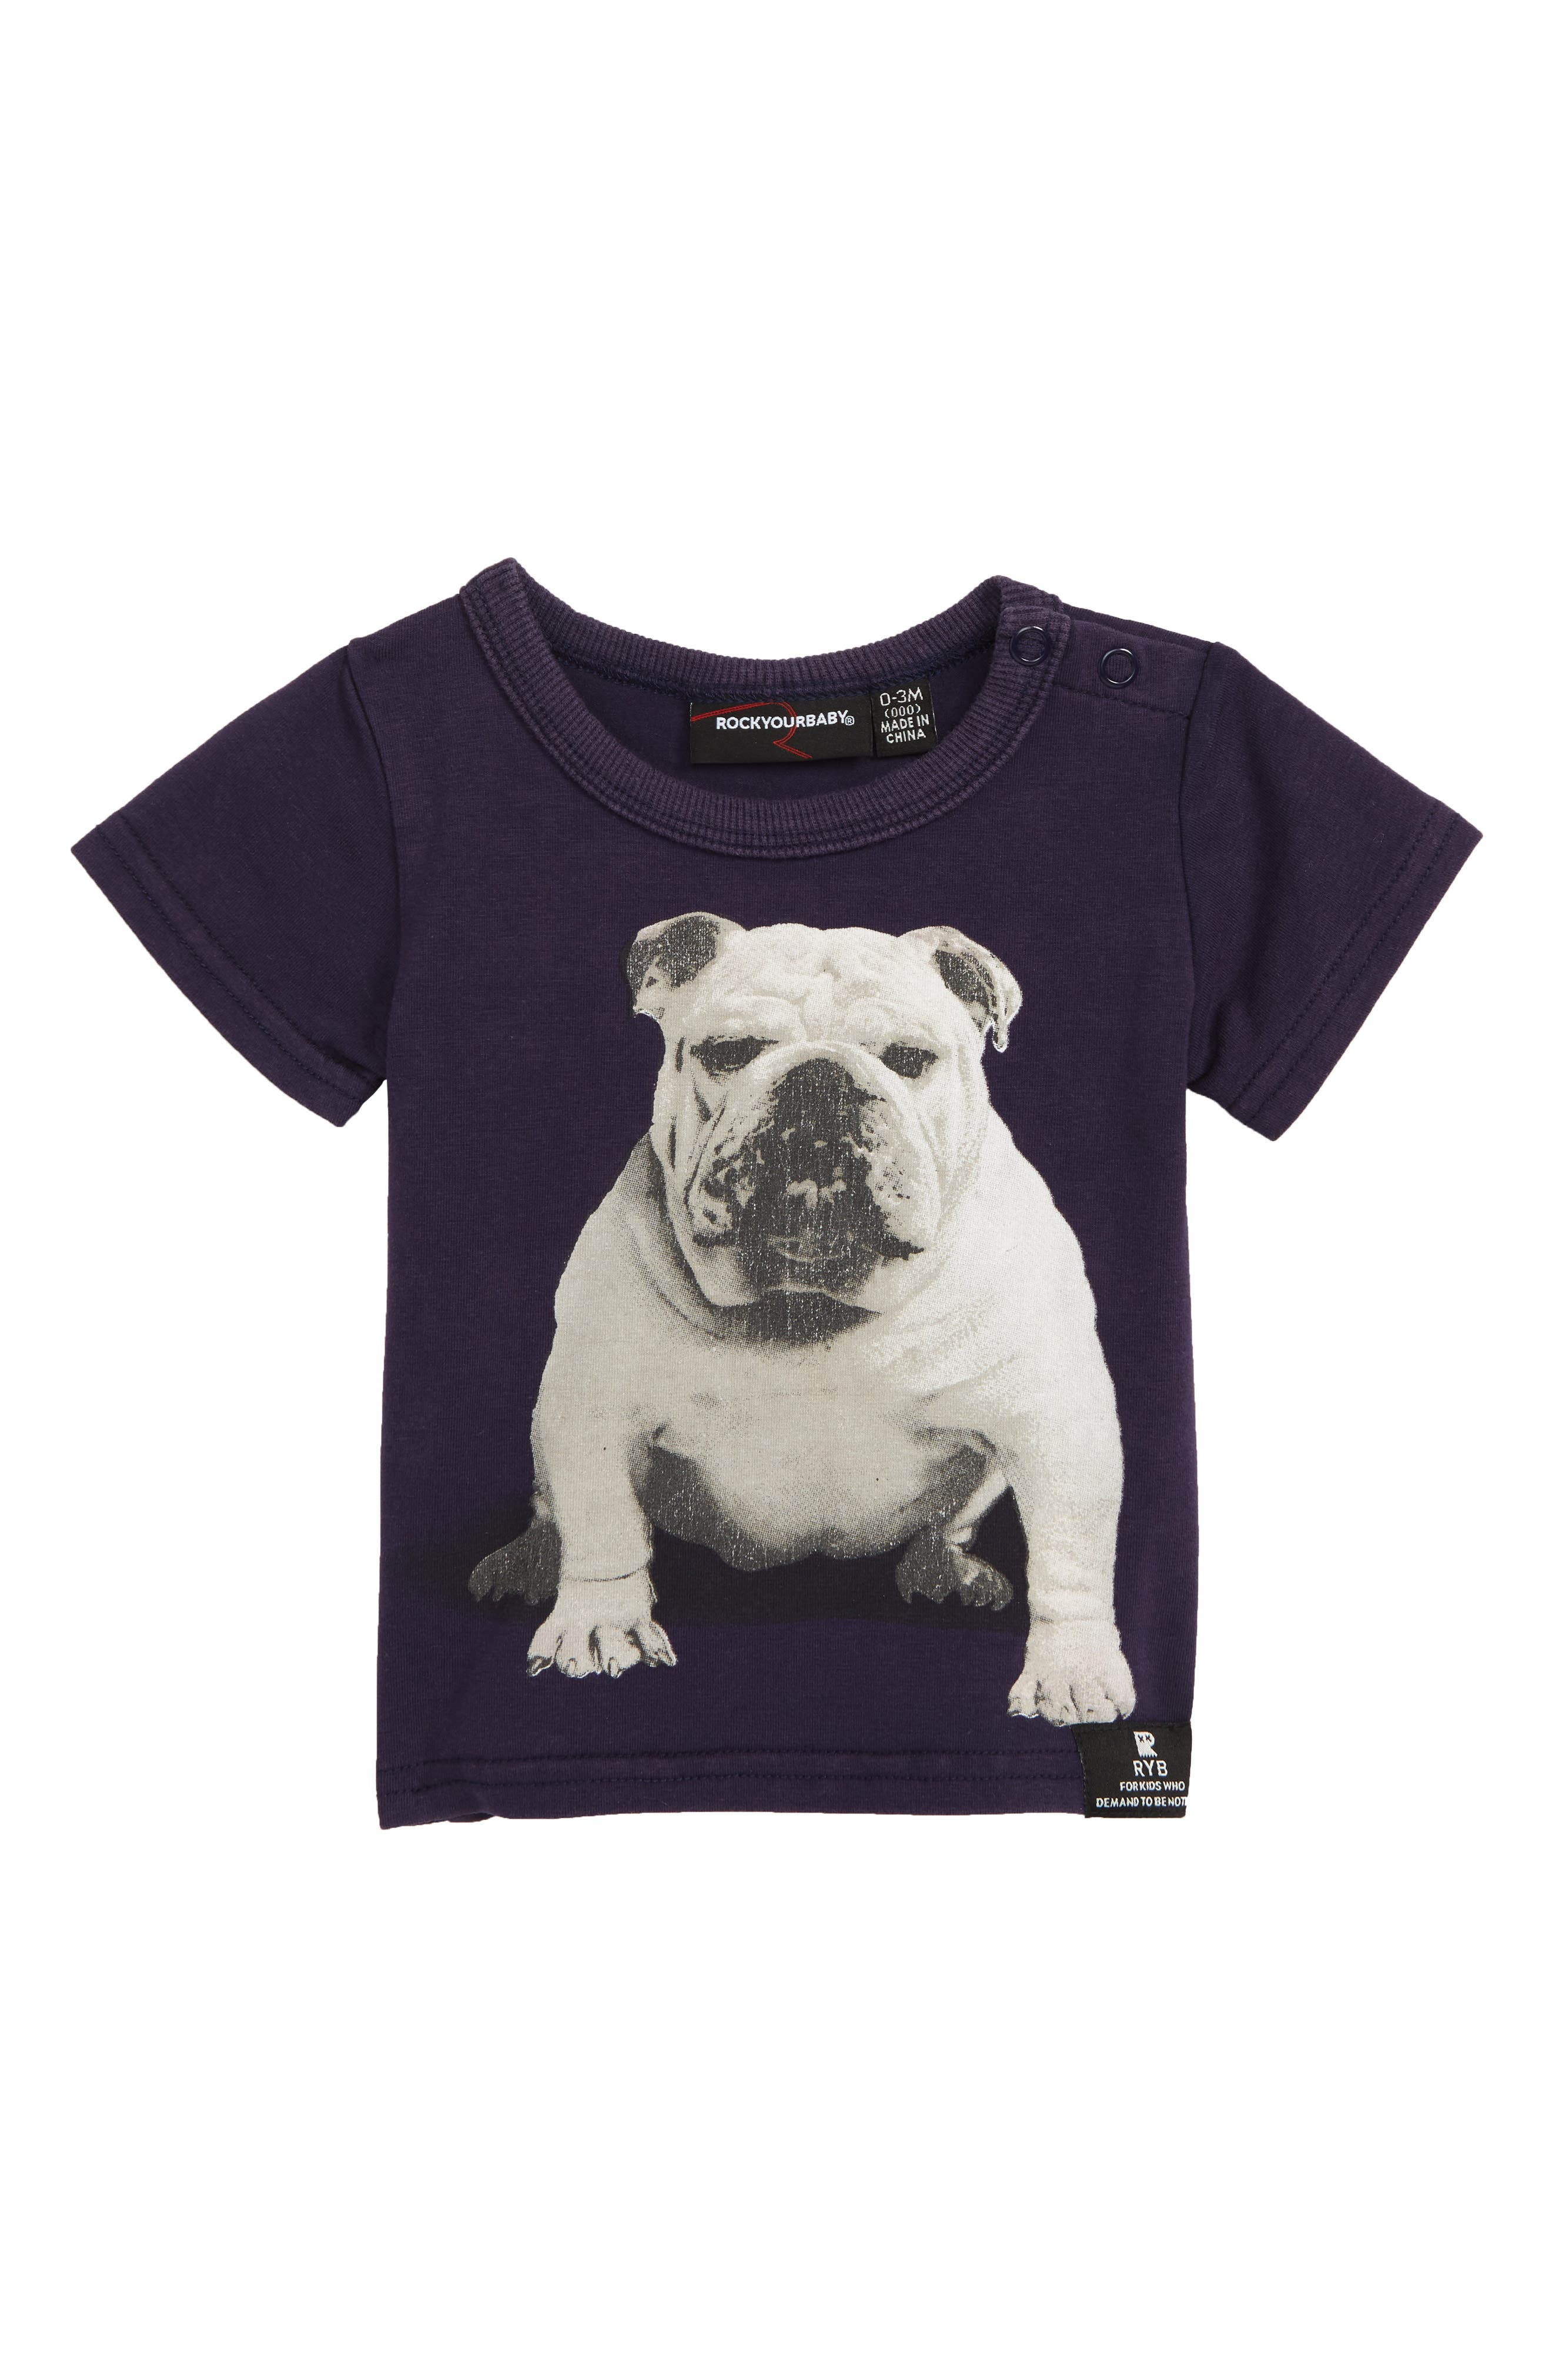 ROCK YOUR BABY Little Bruiser T-Shirt, Main, color, NAVY WASH